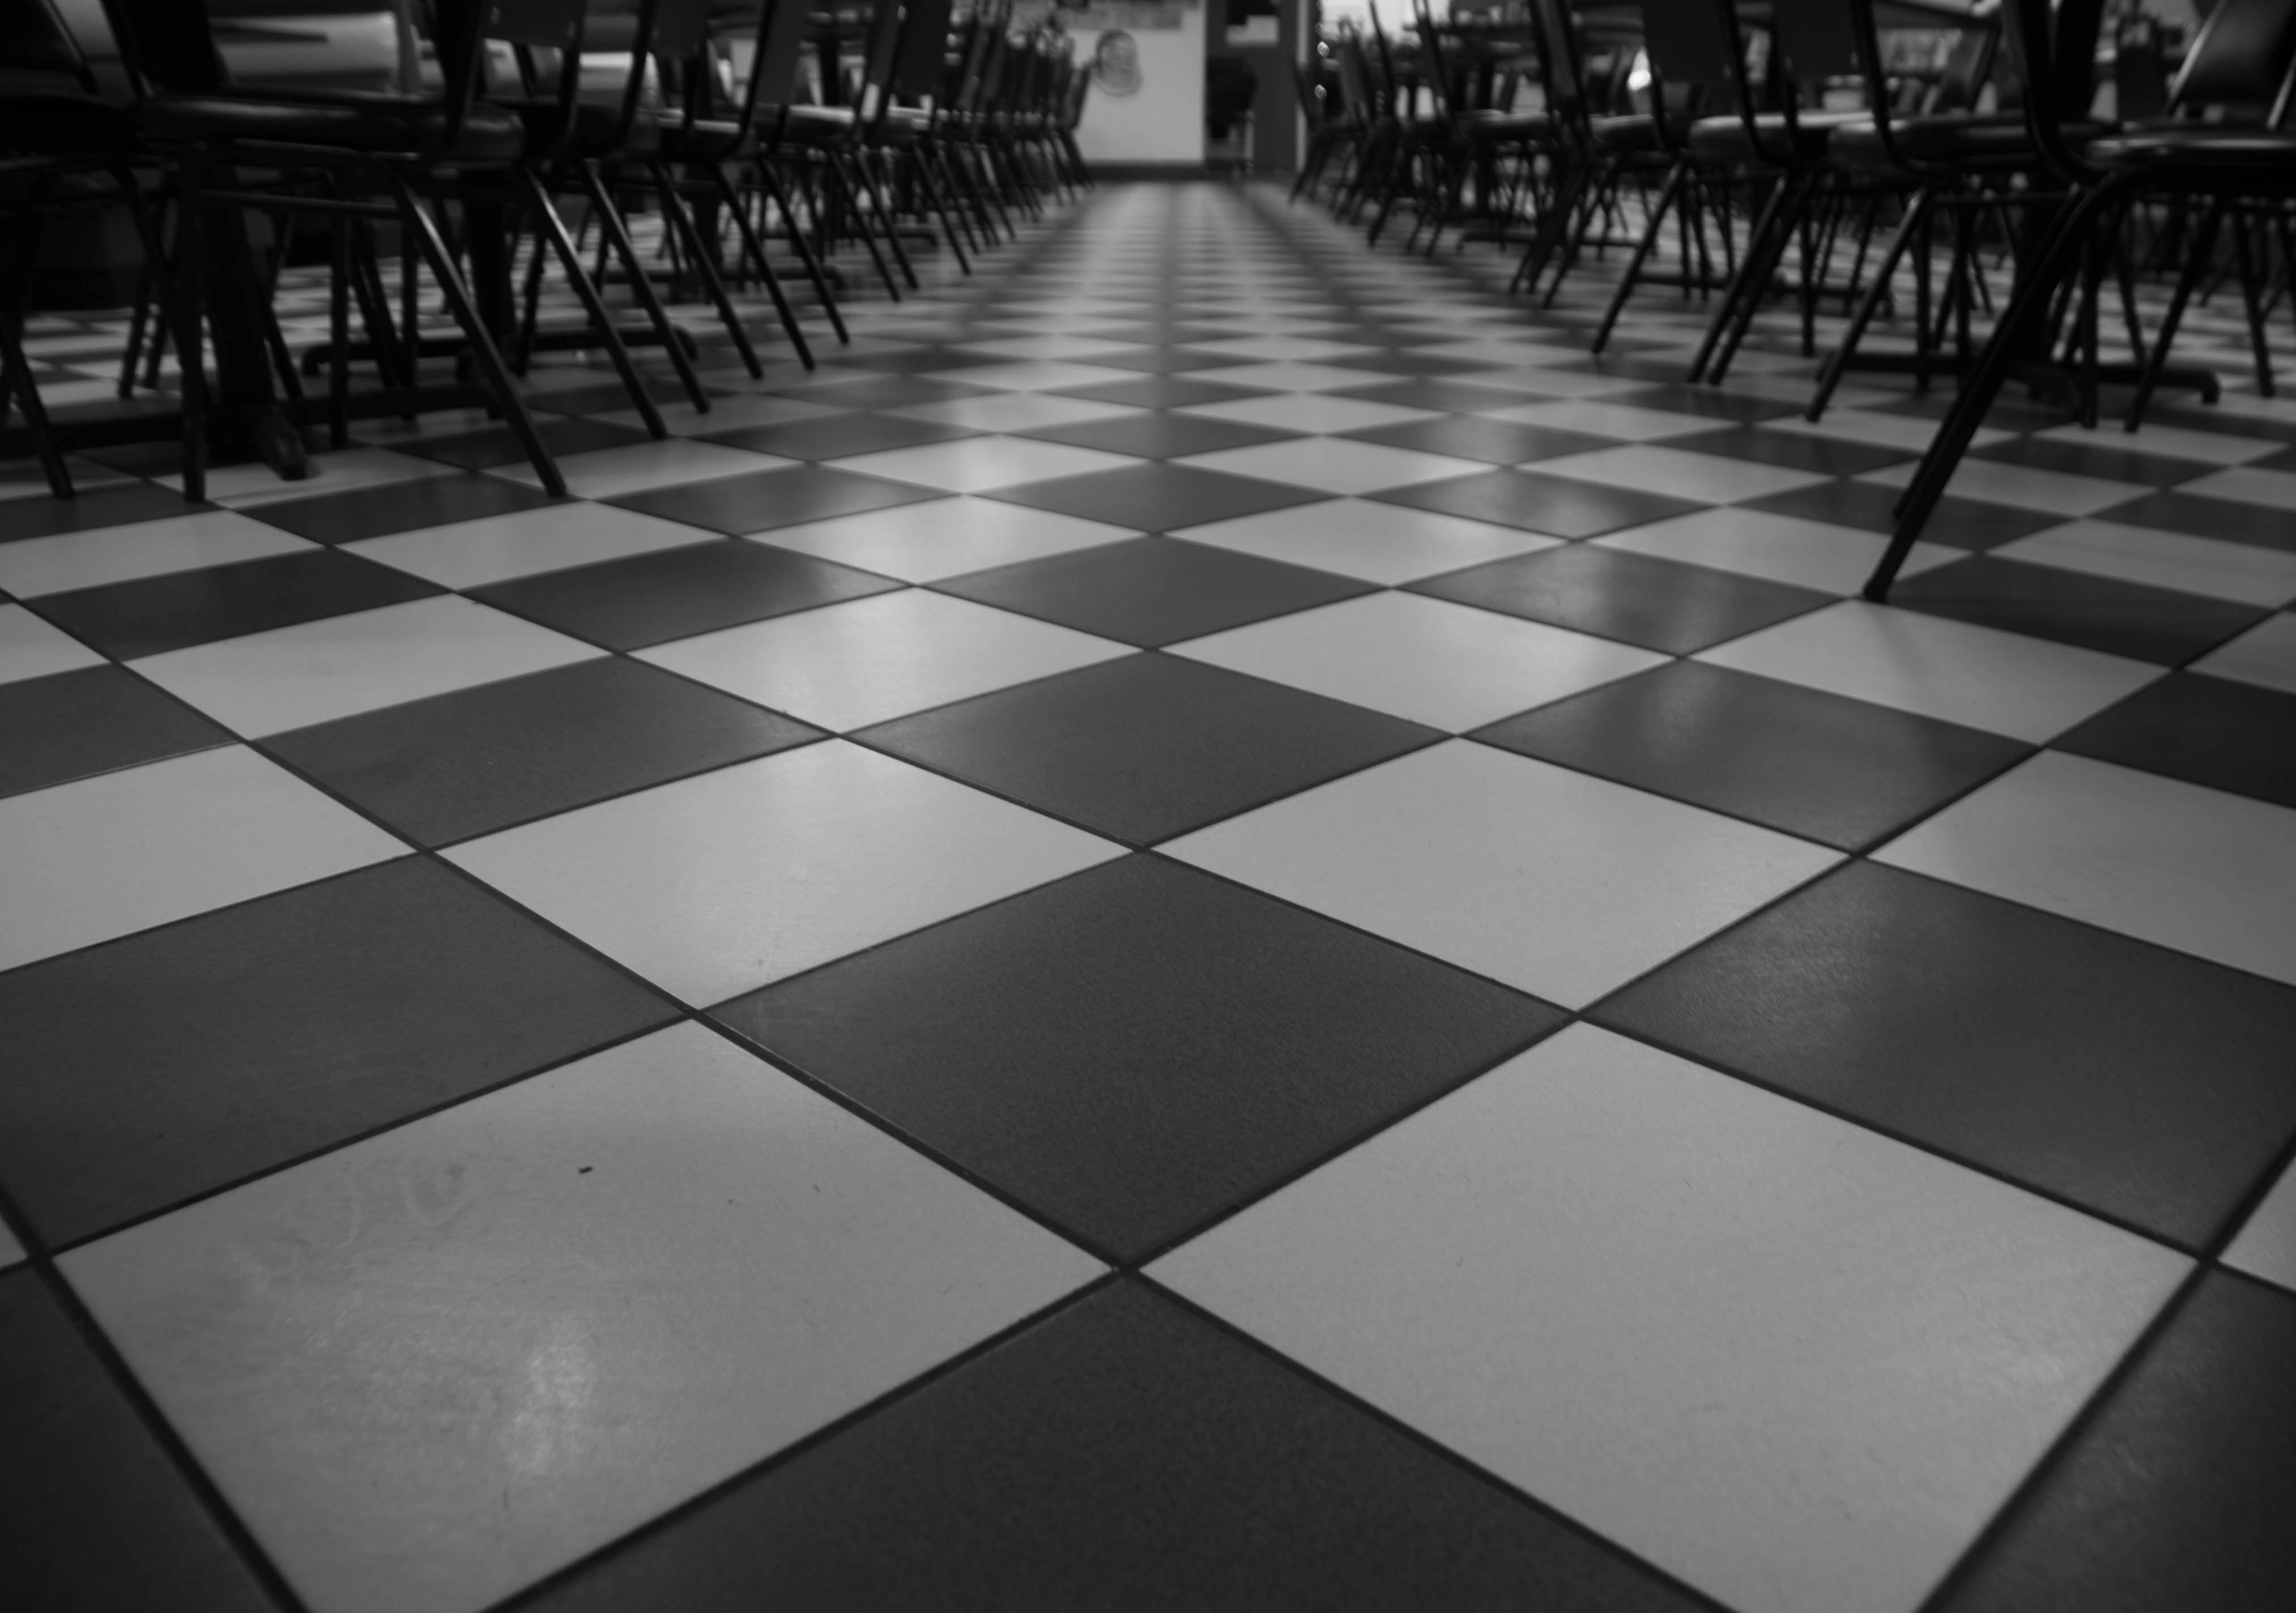 Diner Floor, Symmetrical, Tiles, Restaurant, Diner, HQ Photo